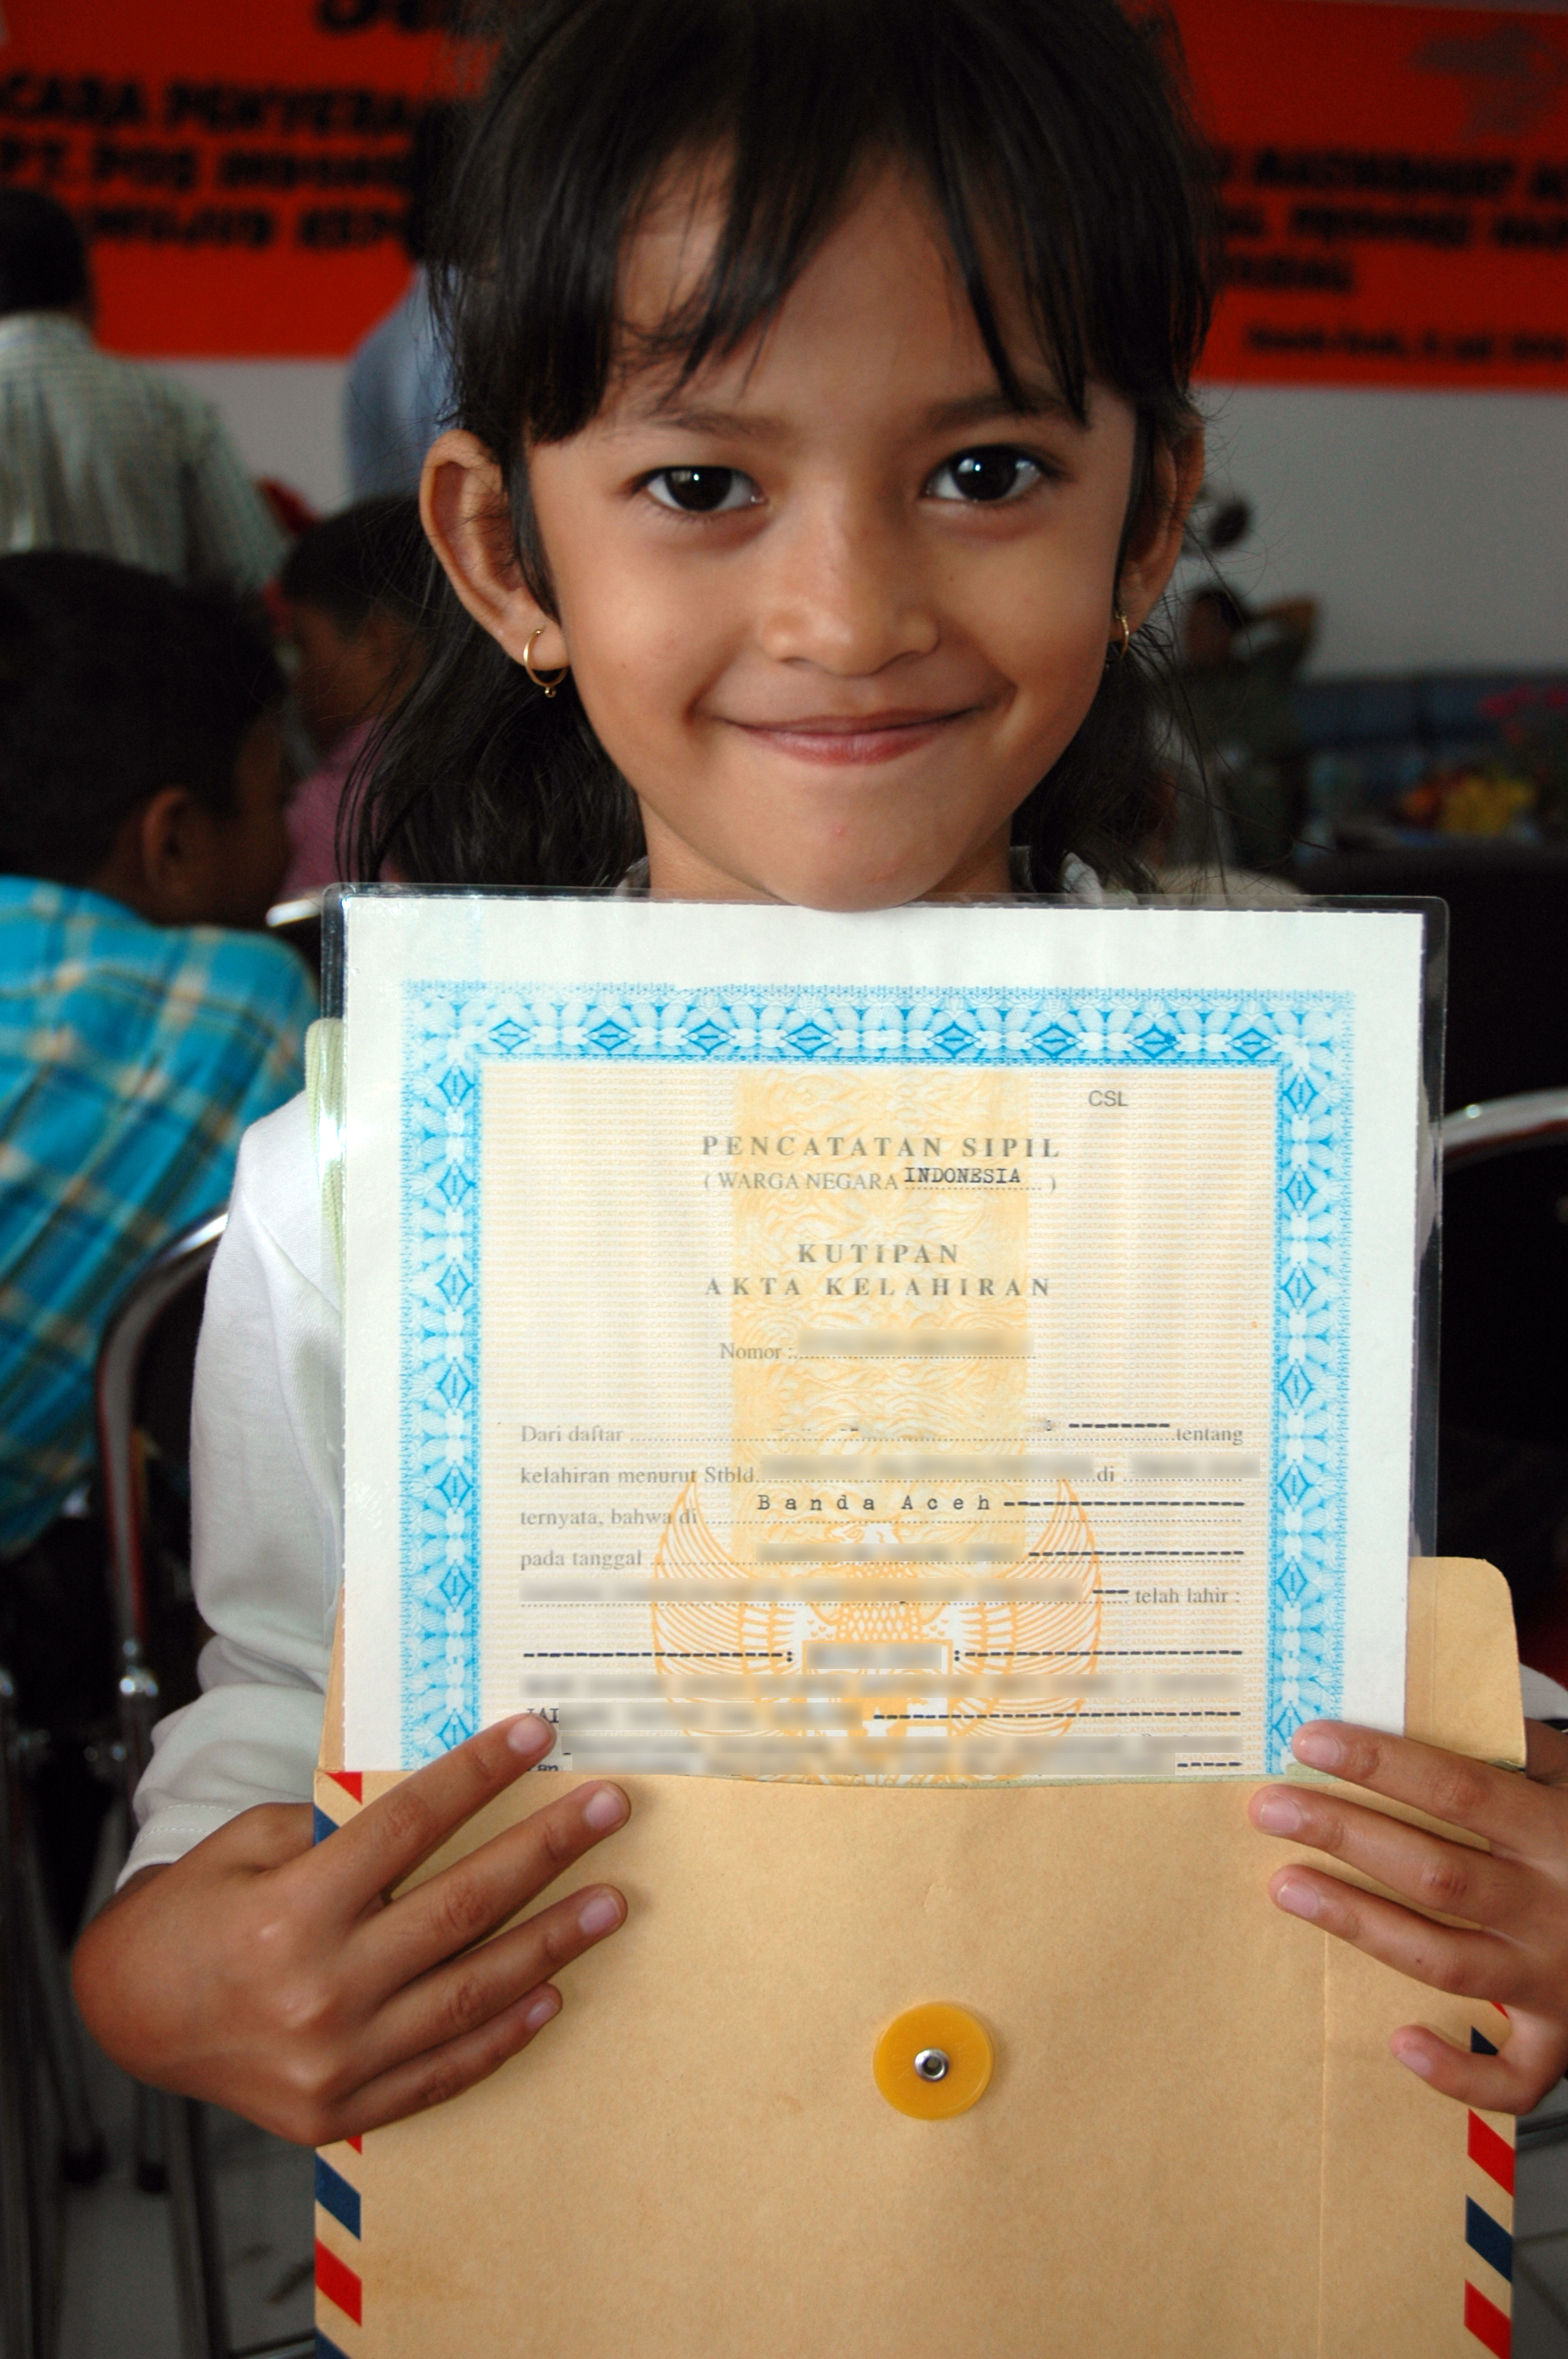 New Birth Certificates Mean Better Opportunities for Tsunami-Affected Children in Indonesia